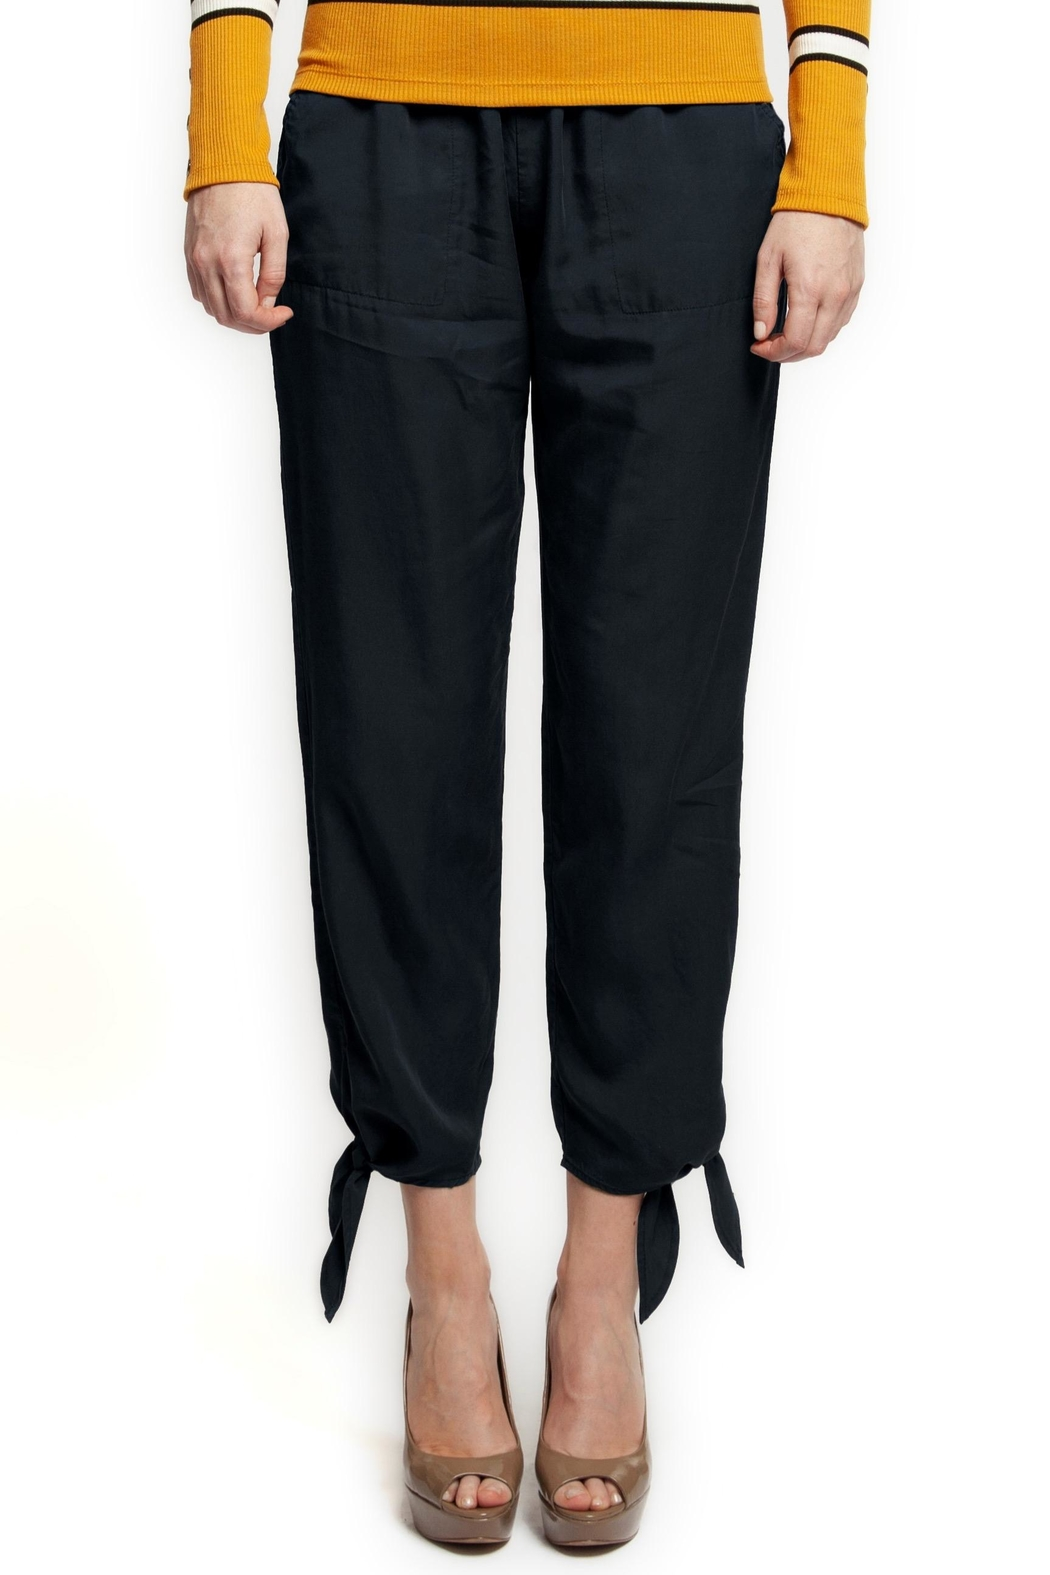 Black Tape Navy Pull-On Pant - Main Image